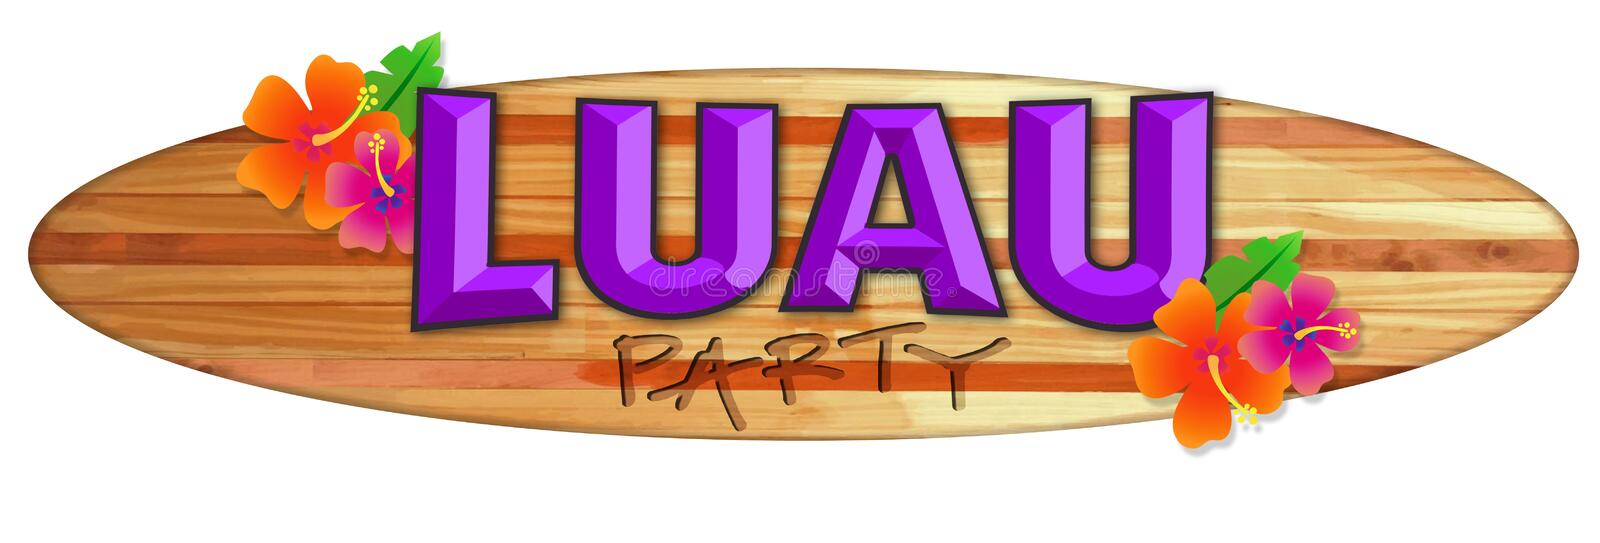 Luau Party Logo Hawaii Surfboard Logo Flowers stock illustration